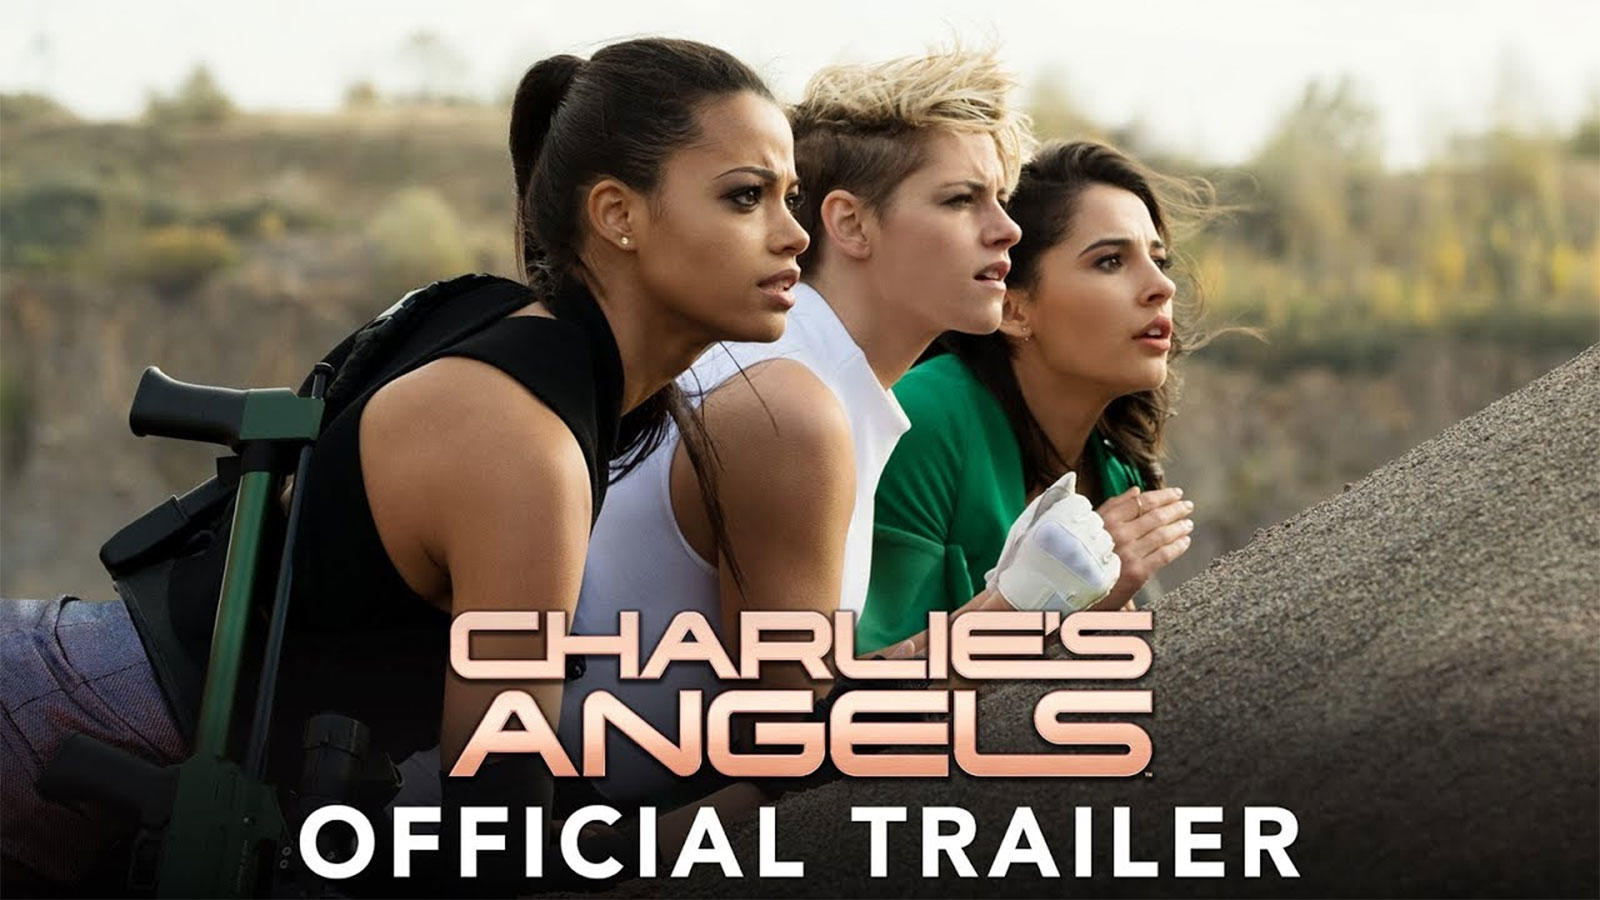 Charlie's Angels - Official Trailer